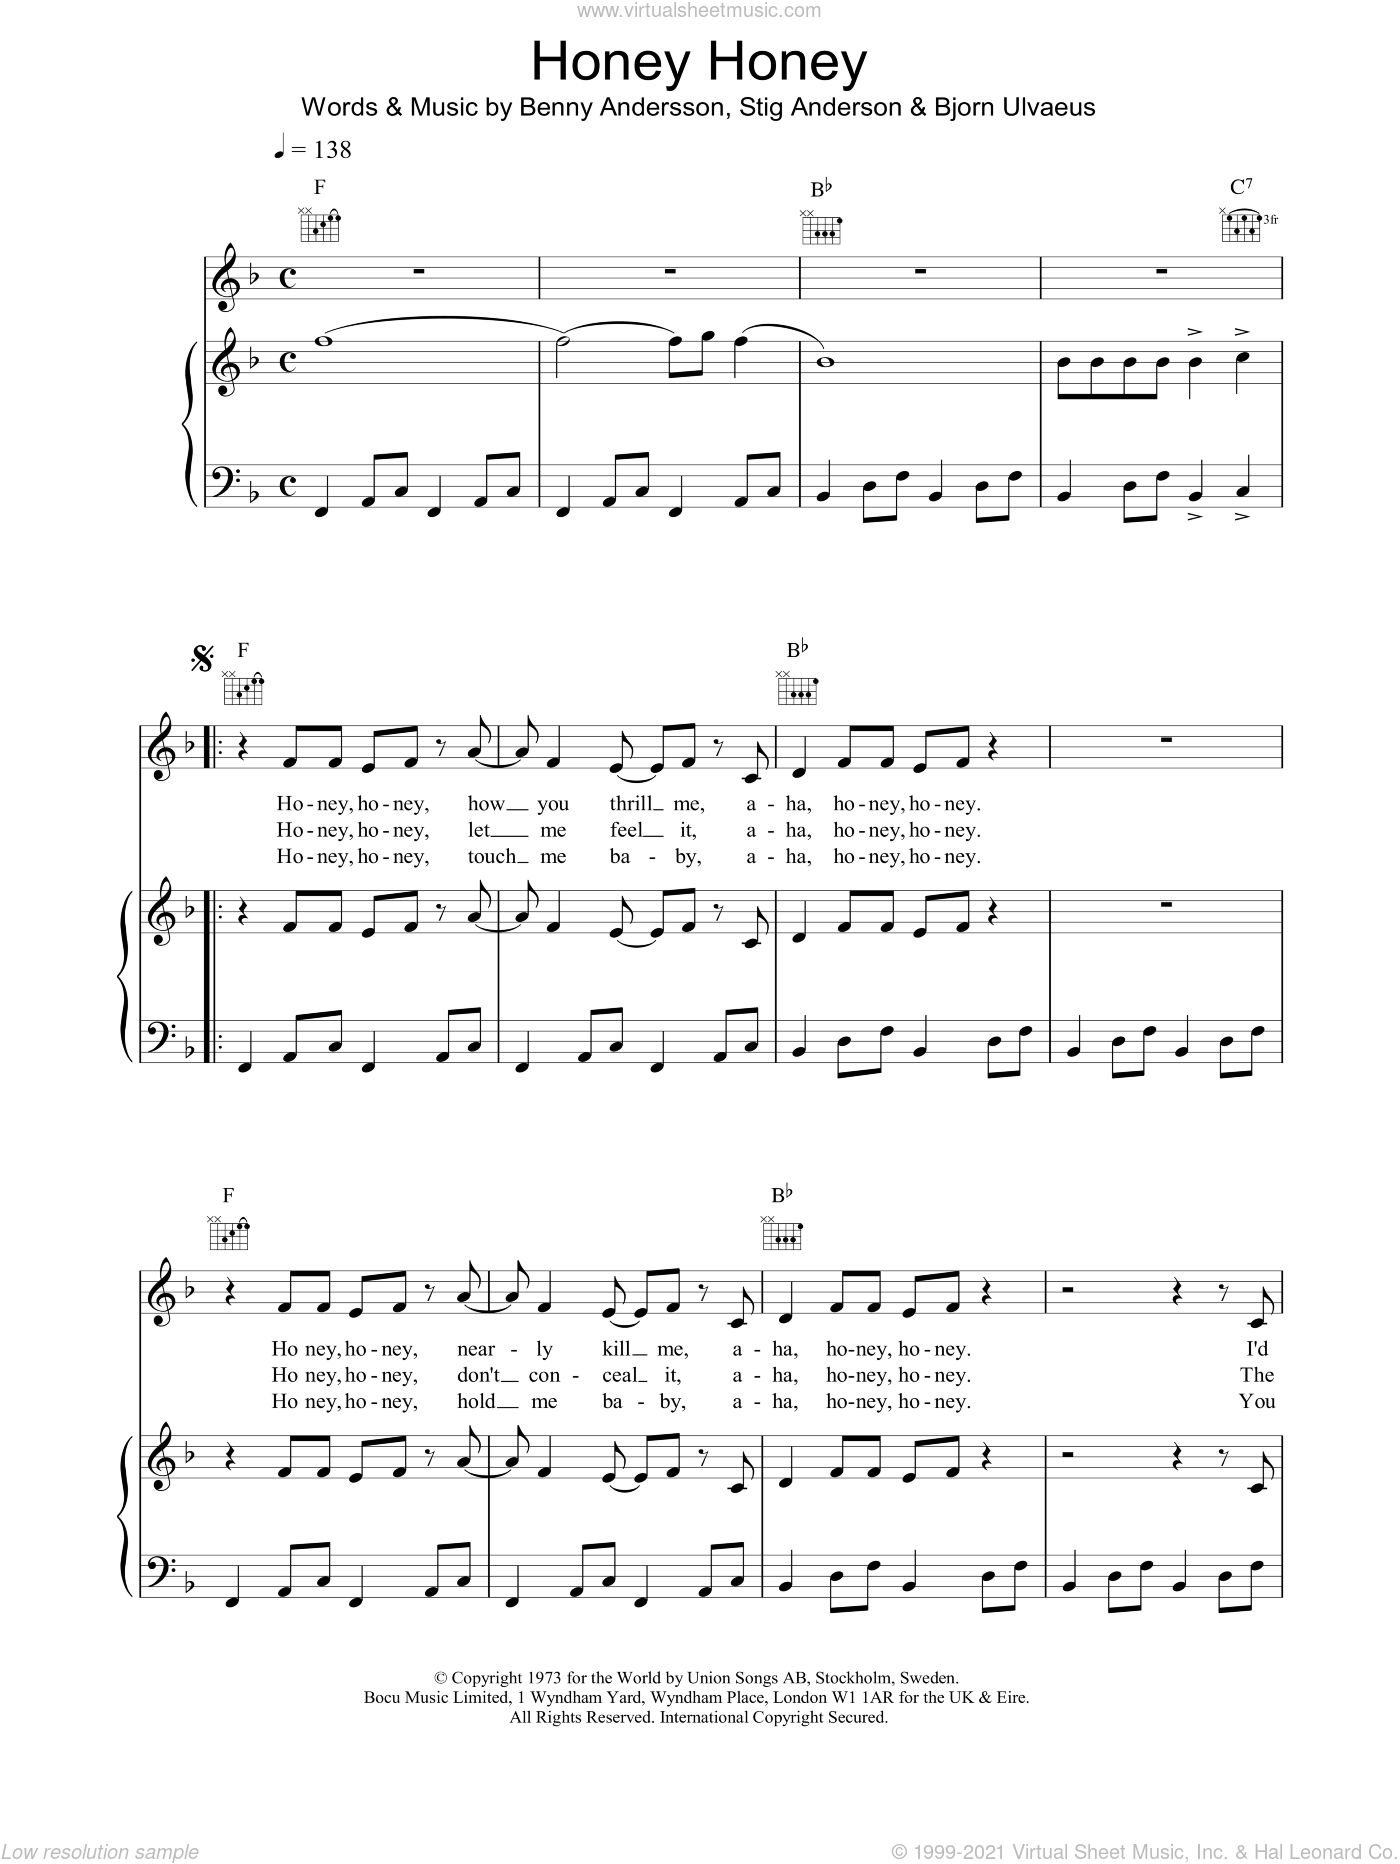 Honey, Honey sheet music for voice, piano or guitar by ABBA